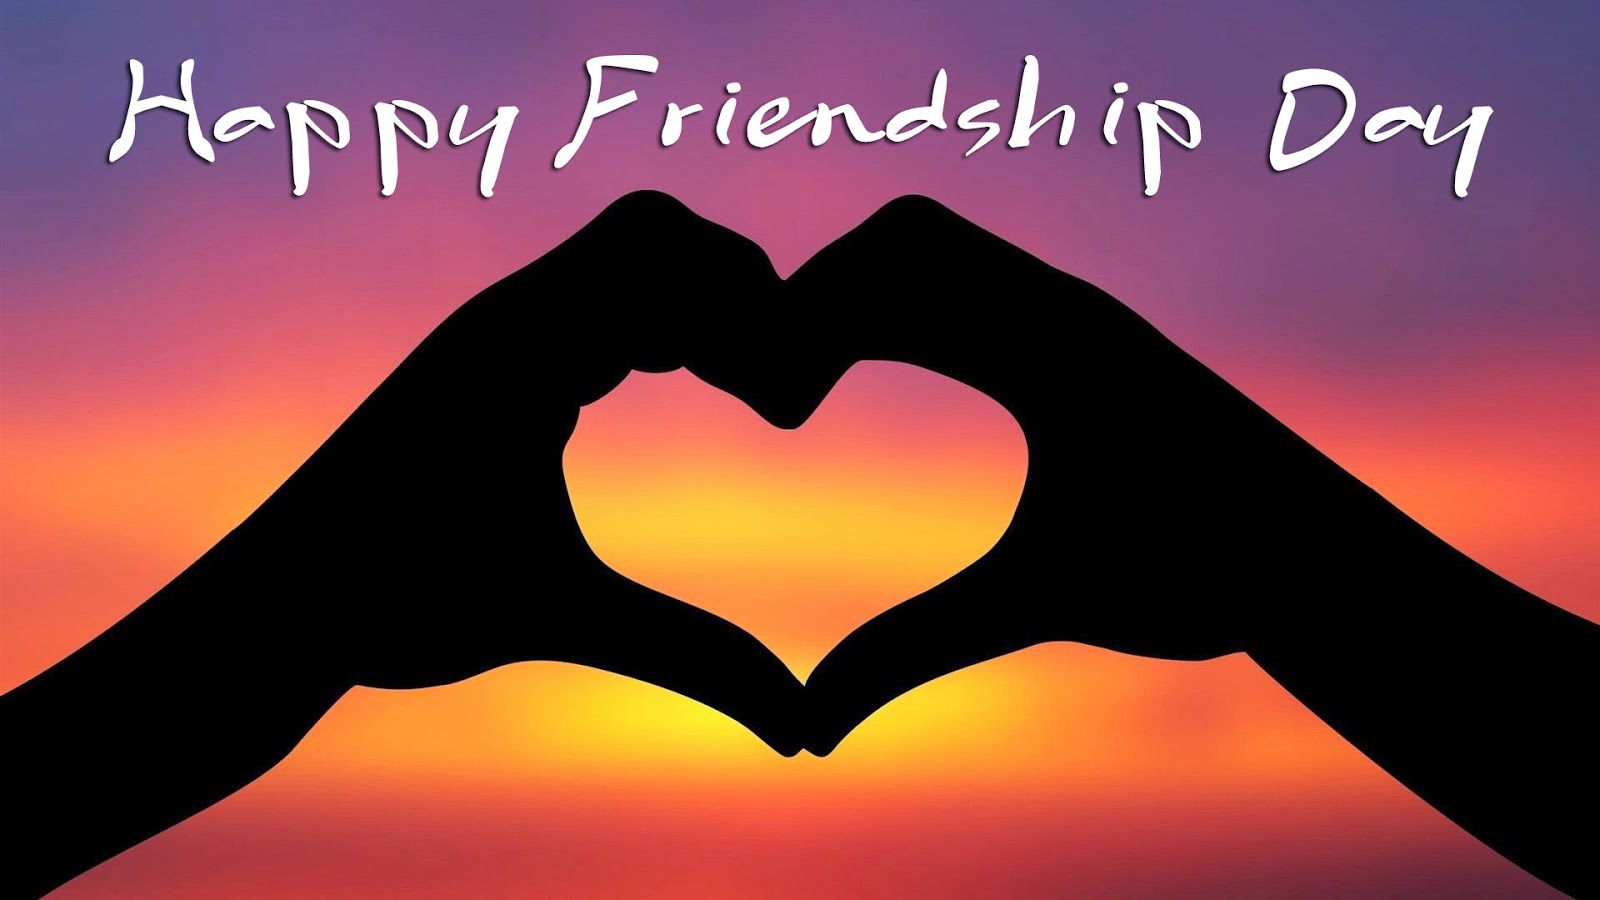 Happy Friendship Day 2015 Wishes Sms N Sayings Best Wishes N